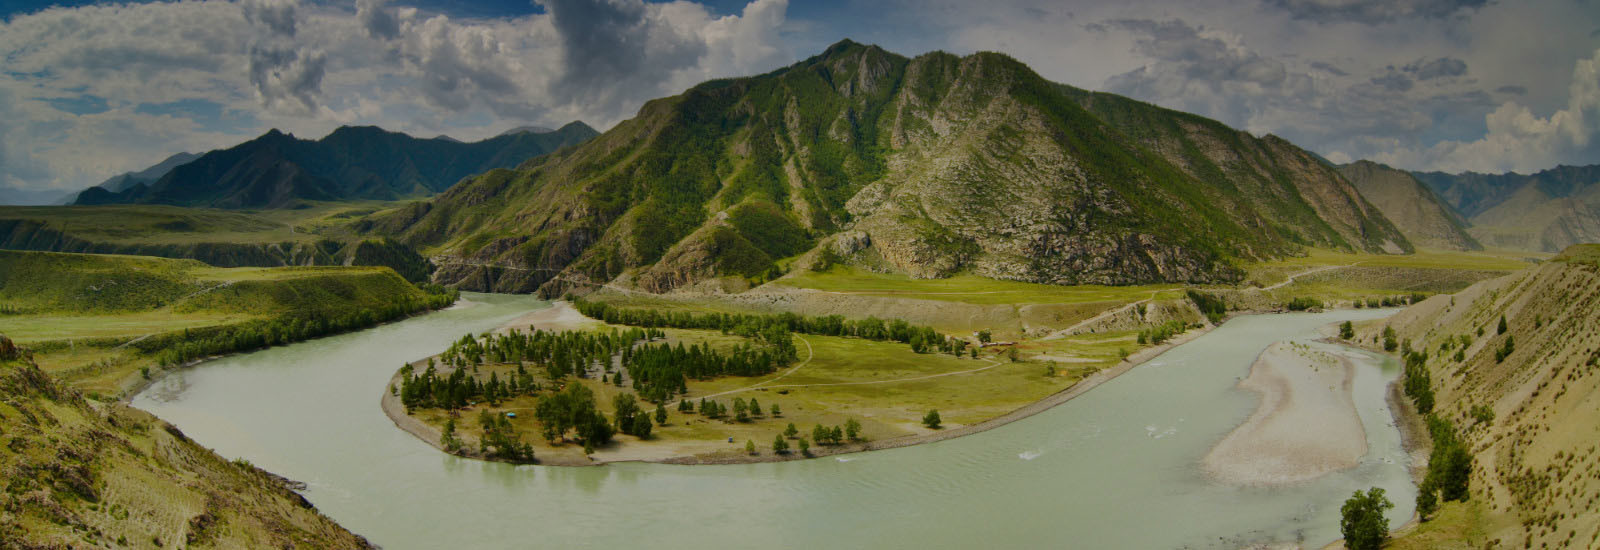 Lake Manzherok, Mountain Altai: photos, recreation centers 39